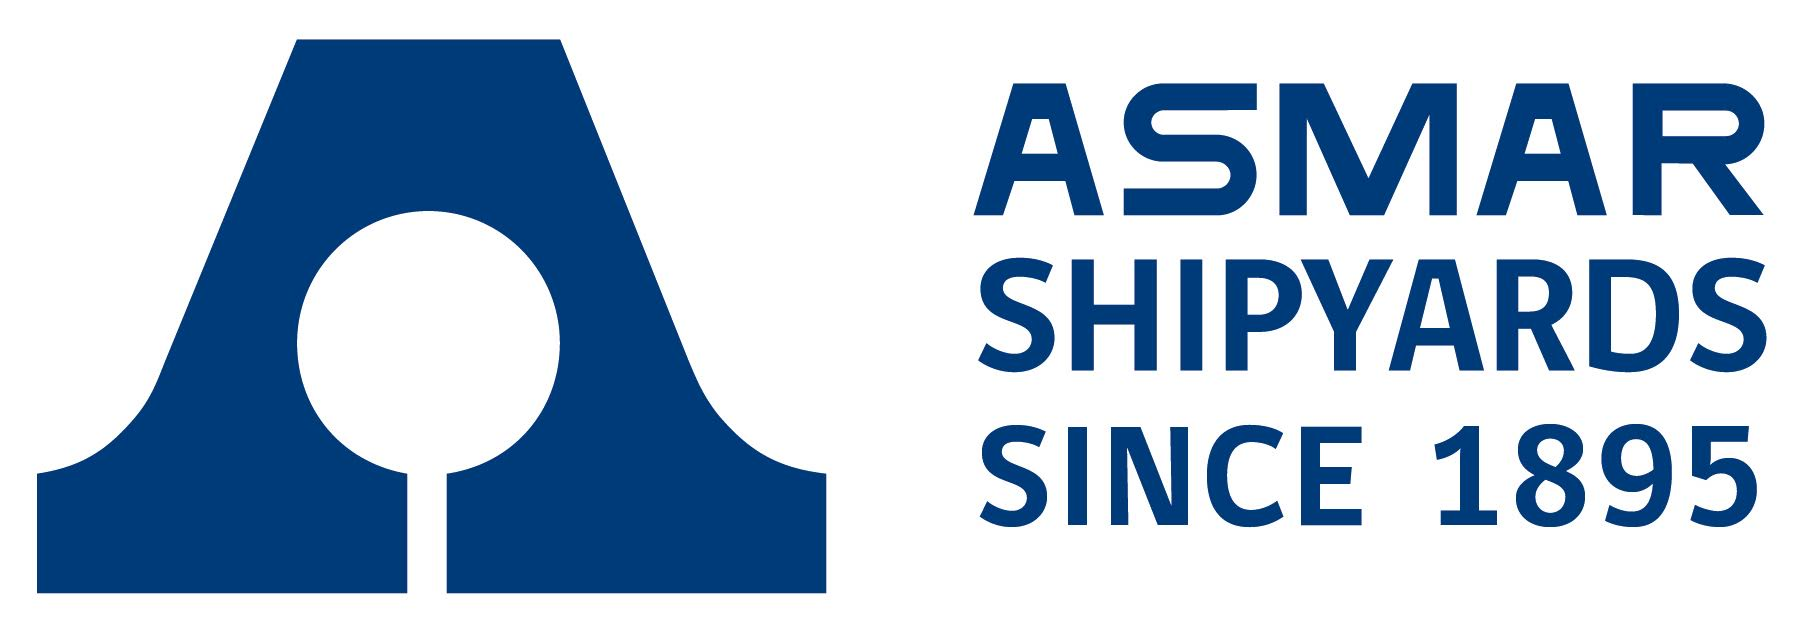 ASMAR Shipyards